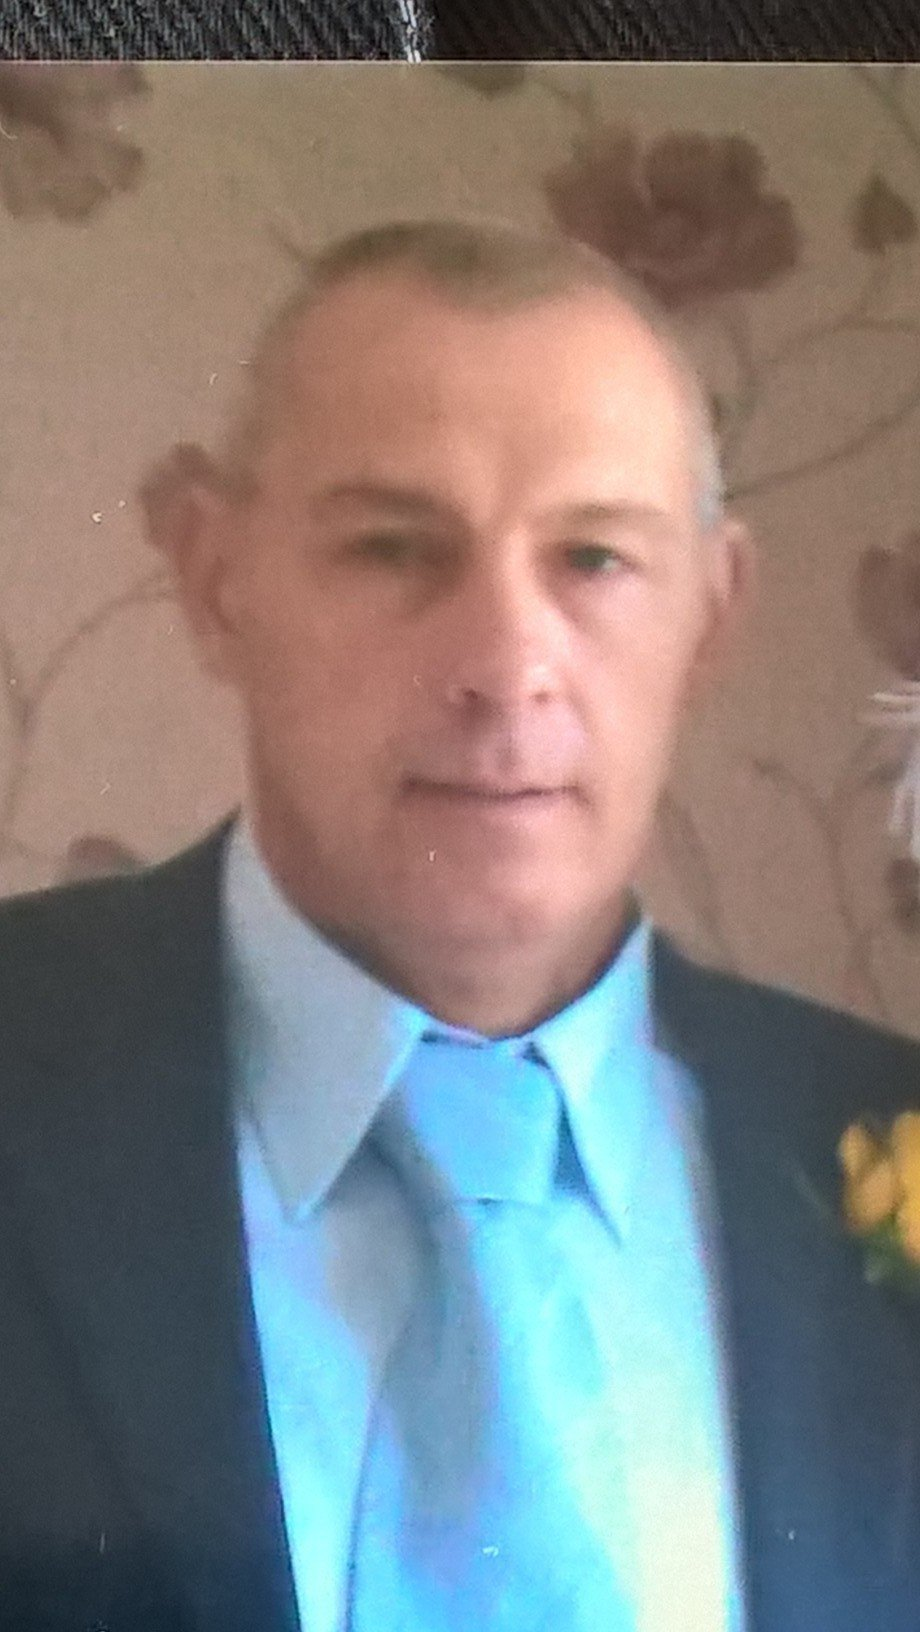 Missing Shaun Talbot, from Chandlers Ford, who was last seen in Winn Road, Southampton on September 3.